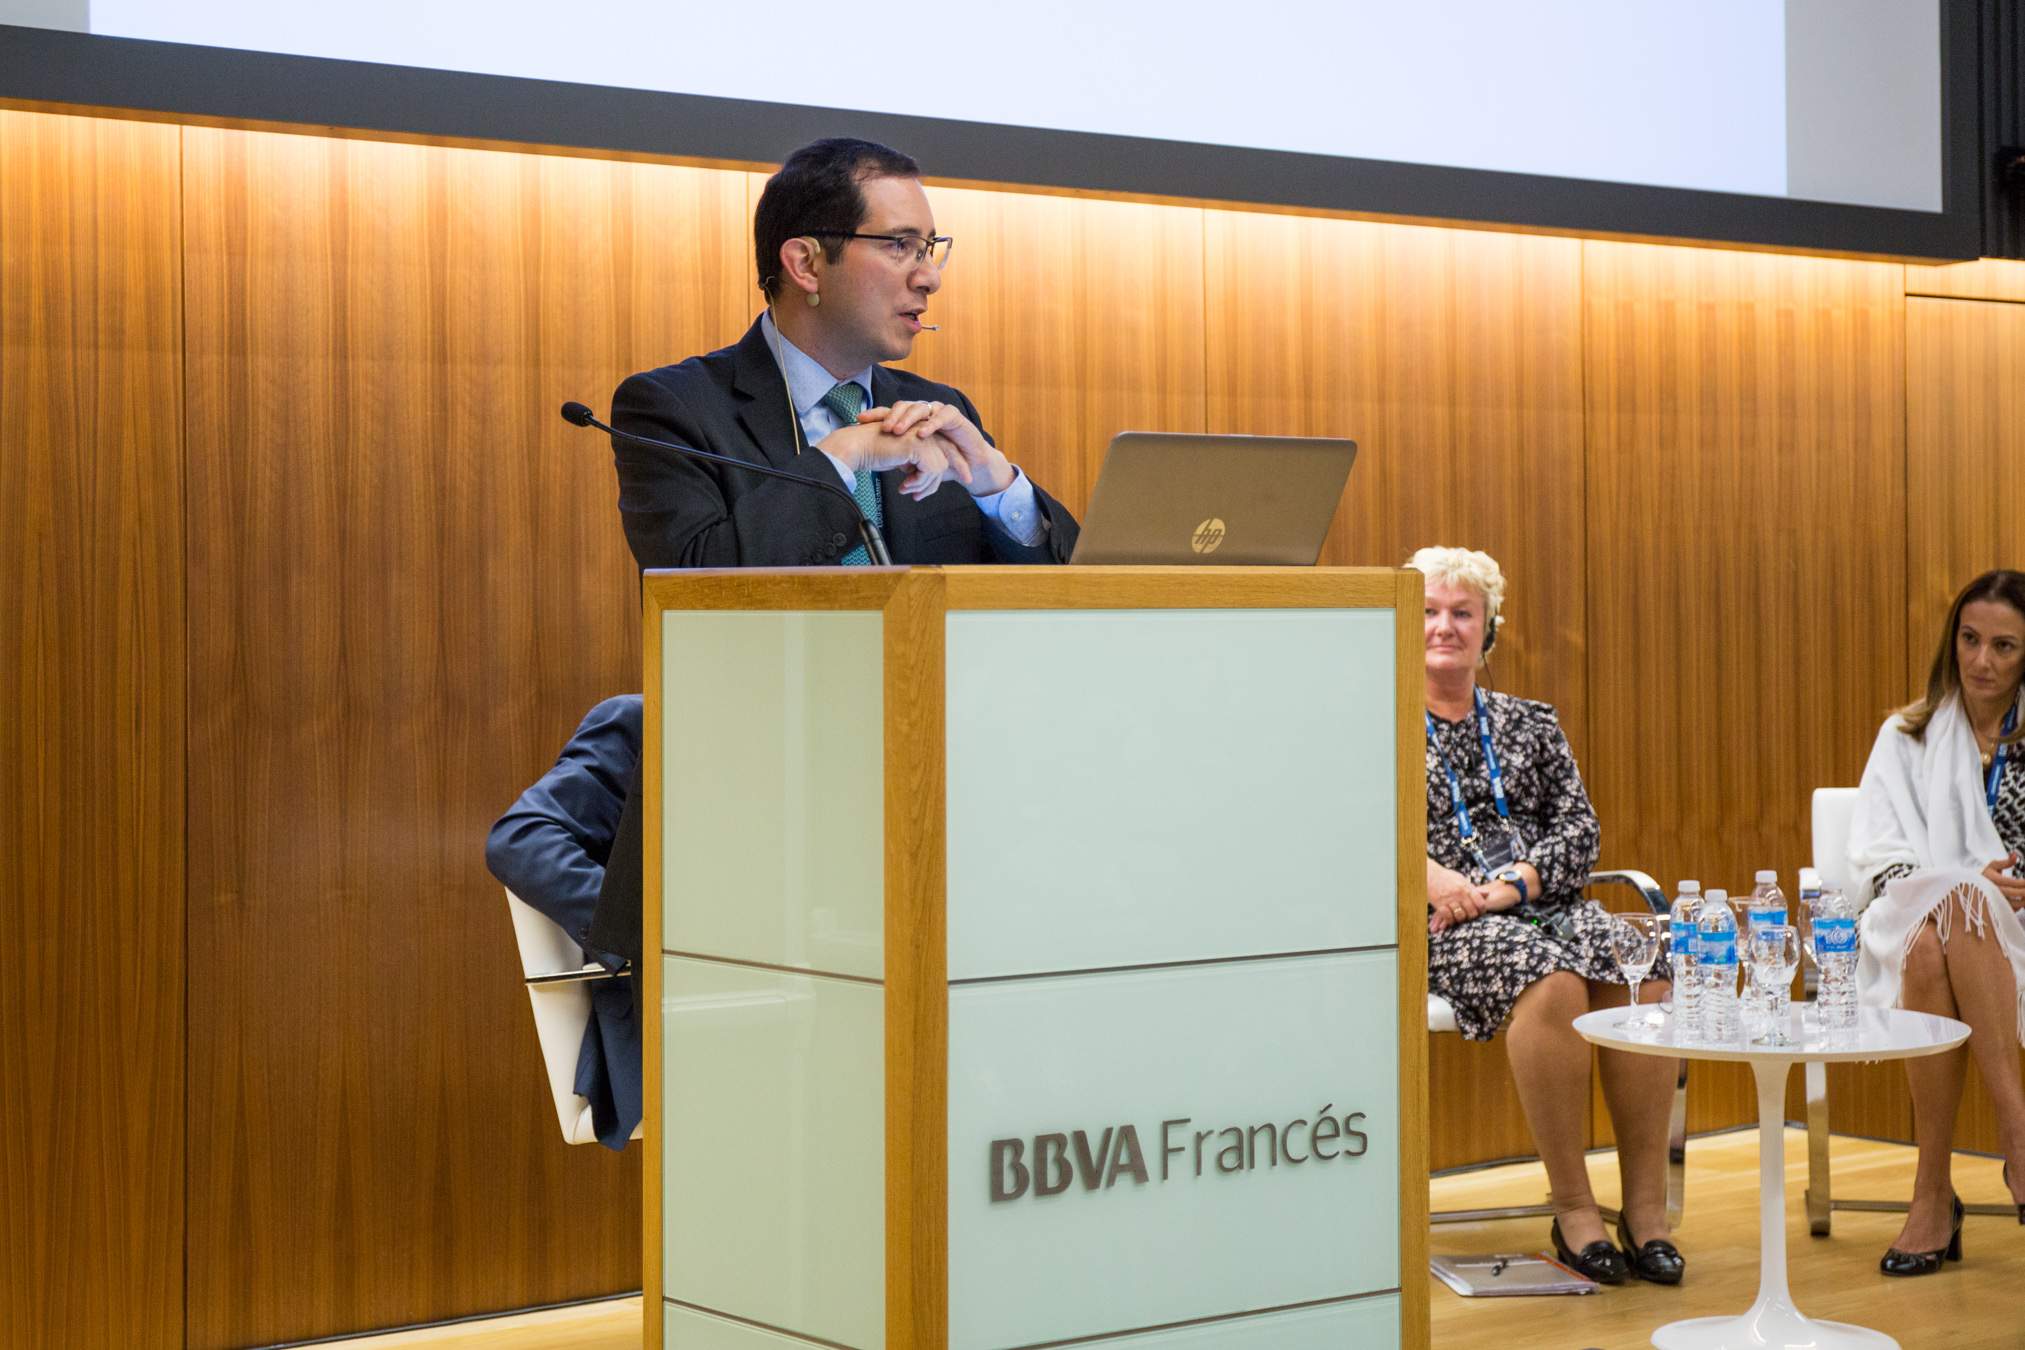 José Miguel Domínguez, Head of Communications and Public Affairs at the Mexican Banks Association